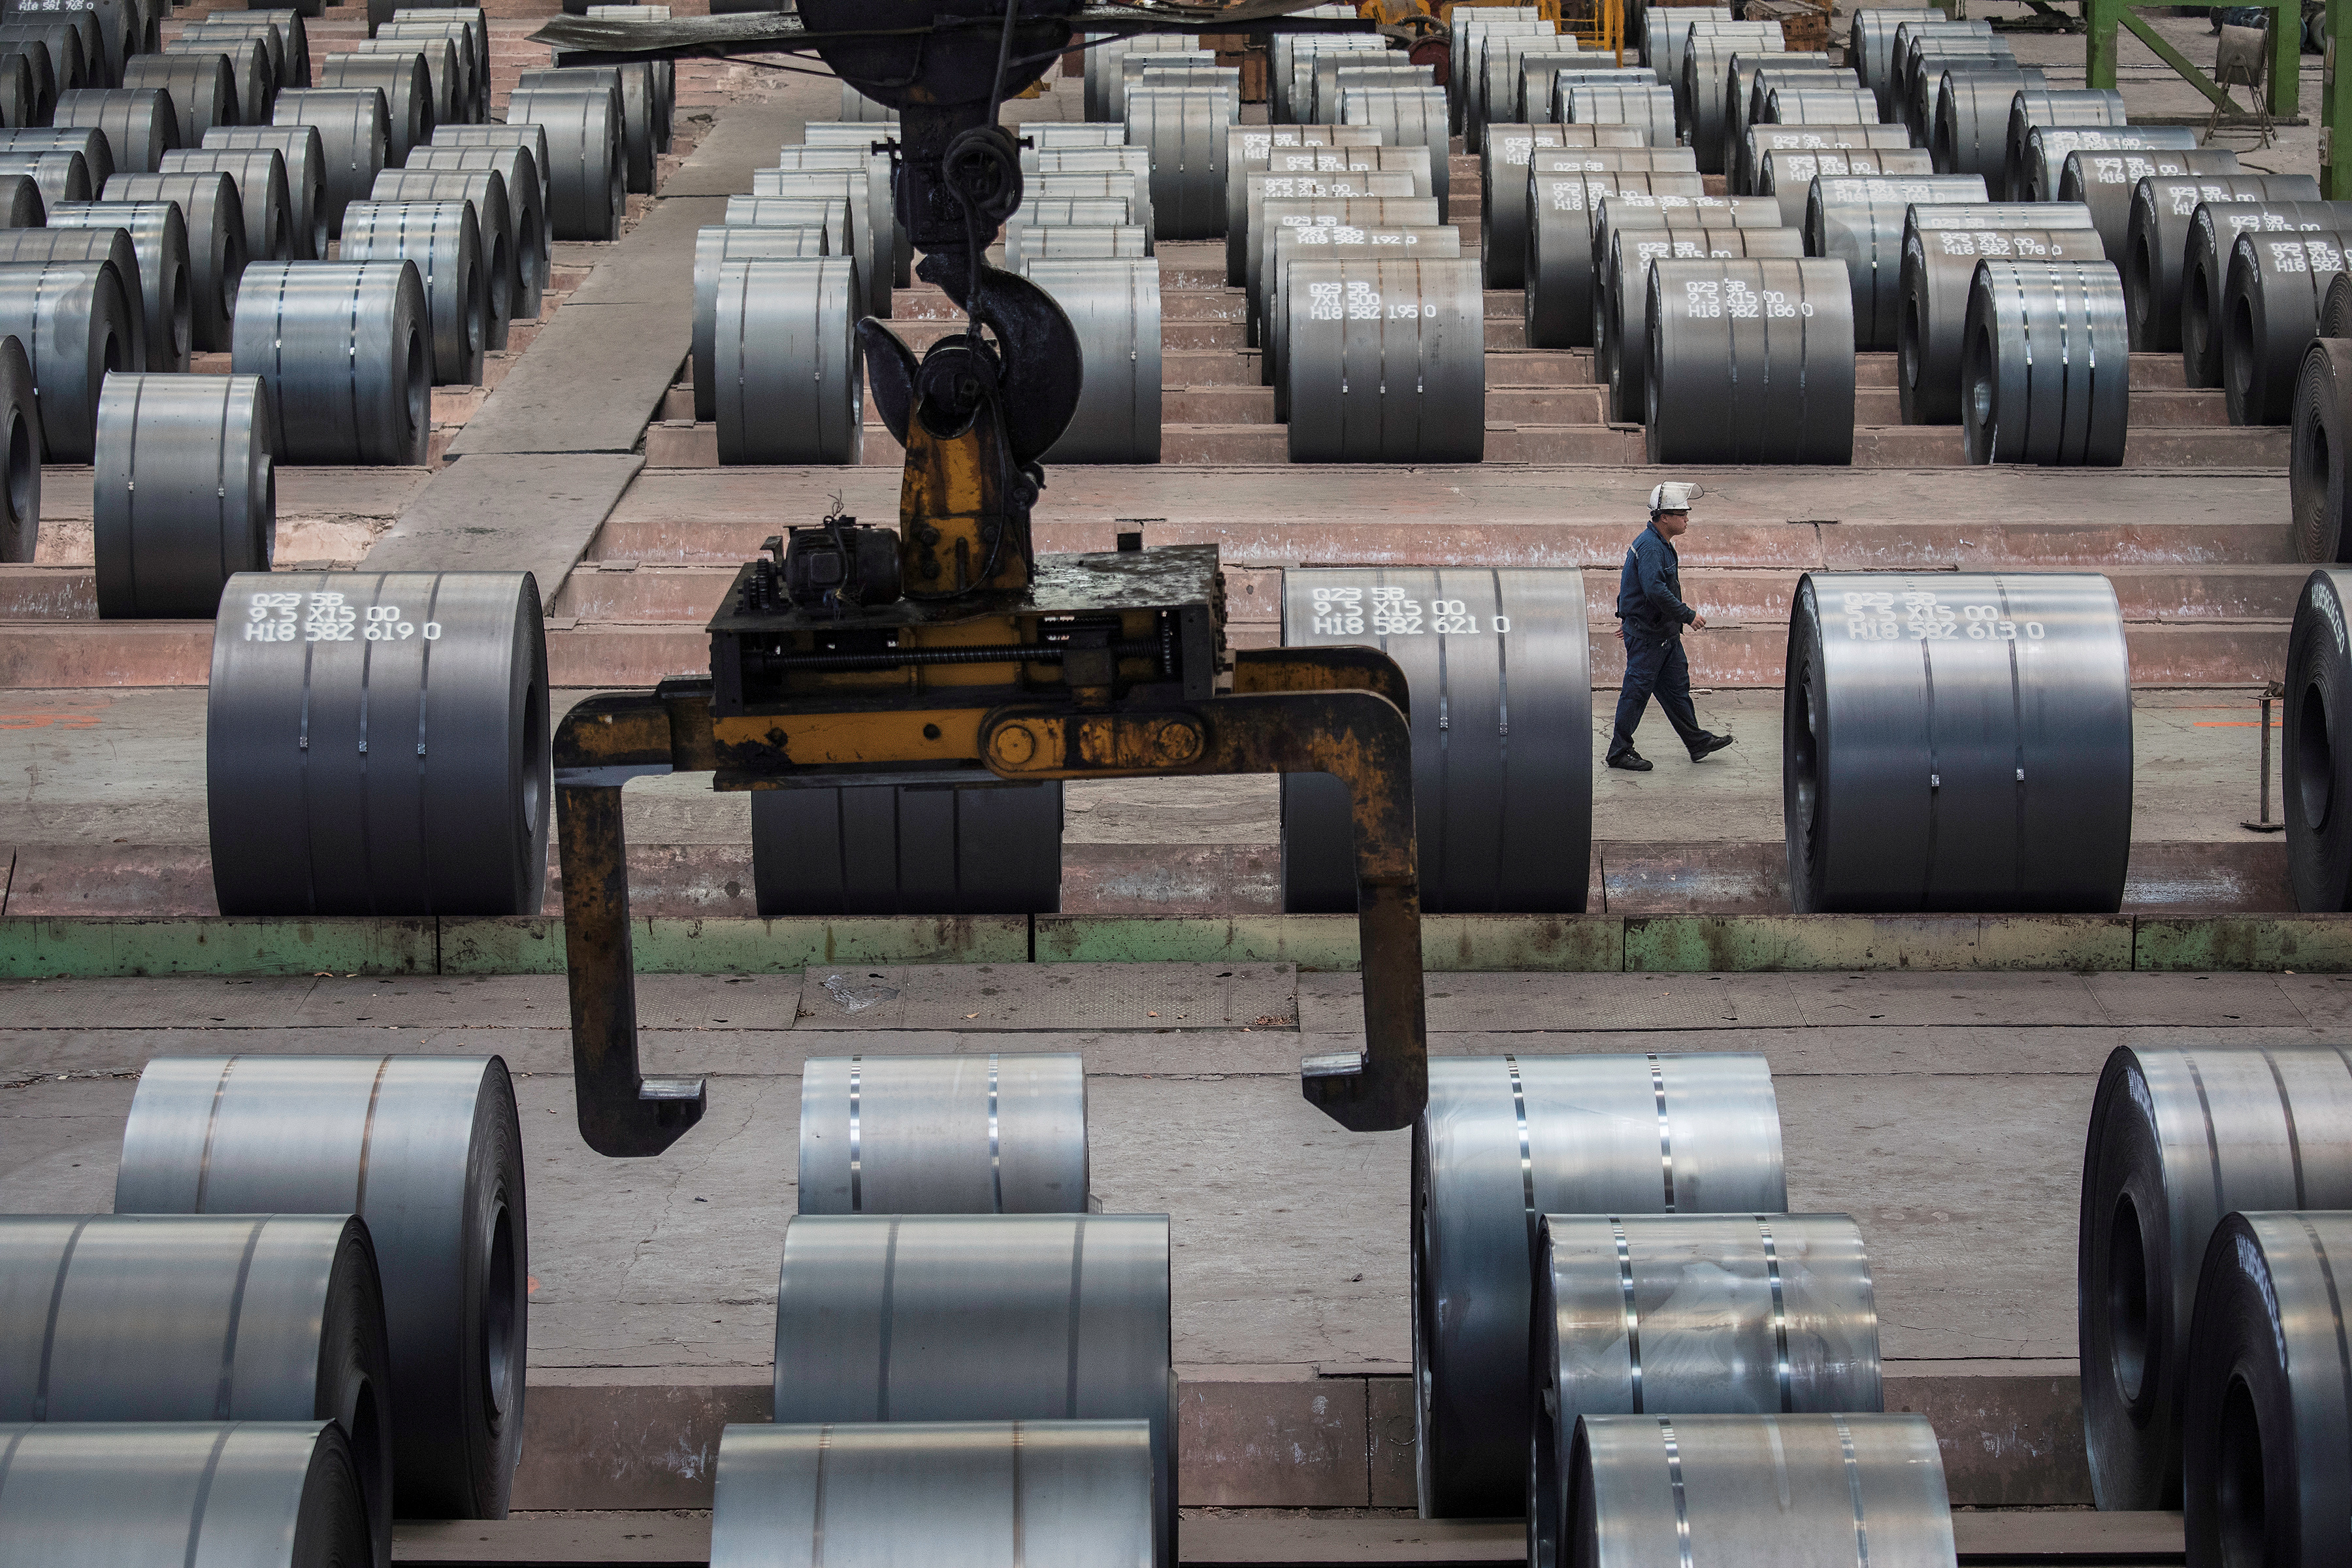 A worker walks past steel rolls at the Chongqing Iron and Steel plant in Changshou, Chongqing, China August 6, 2018. REUTERS/Damir Sagolj